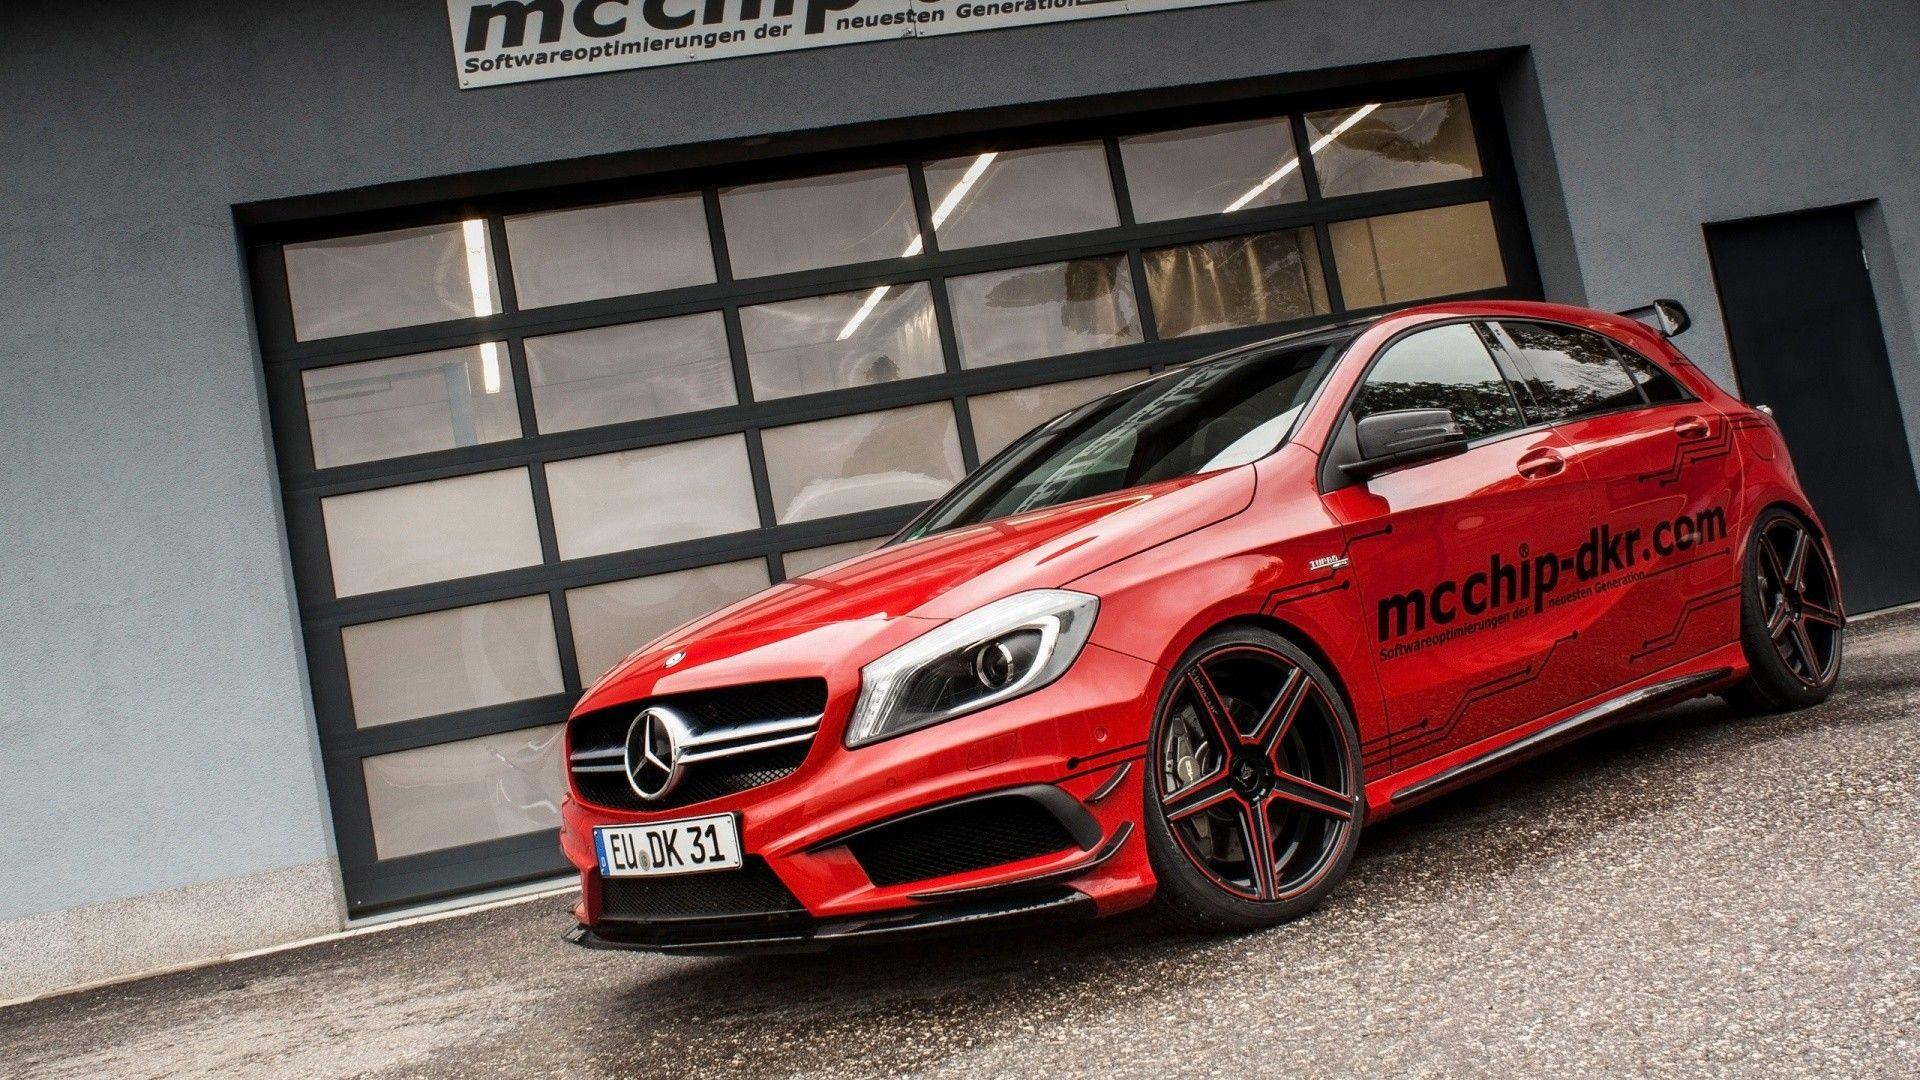 car, Mercedes Benz, GLA 45 AMG, Red Cars Wallpapers HD / Desktop and